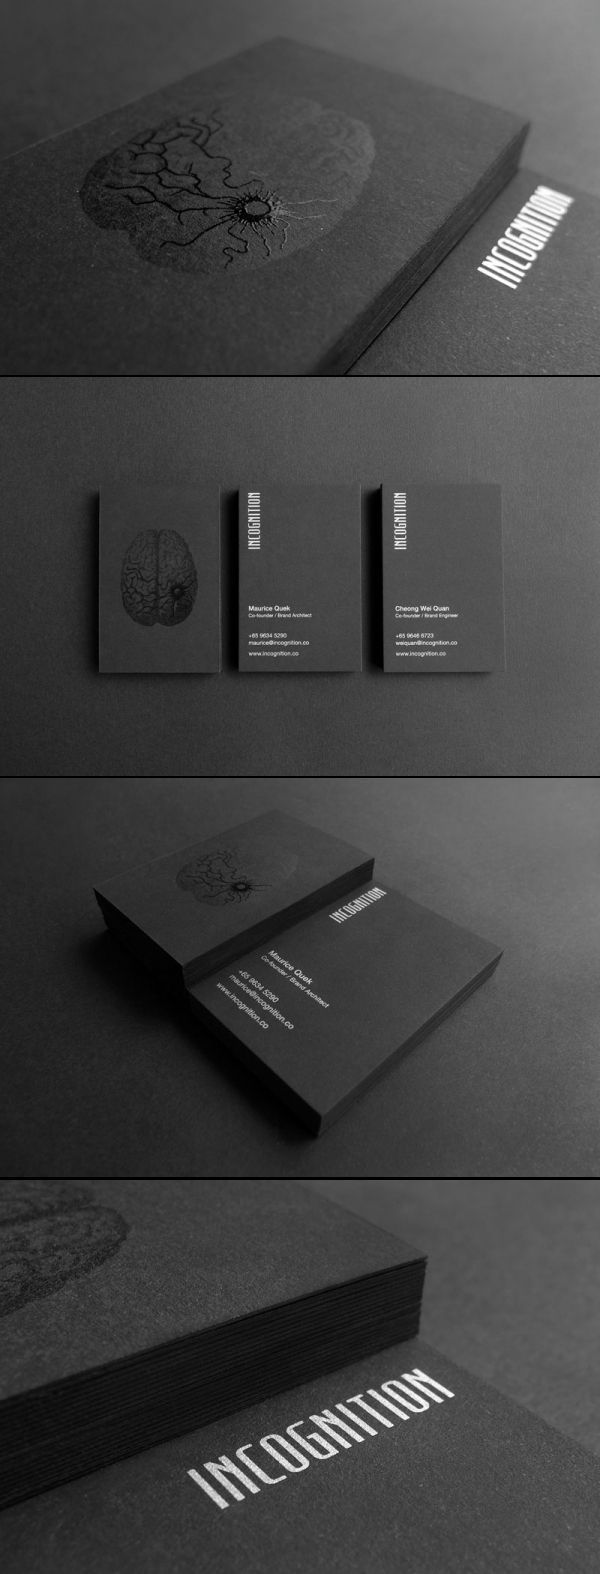 35 best lawyer business cards images on pinterest carte de 35 best lawyer business cards images on pinterest carte de visite visit cards and business cards reheart Images